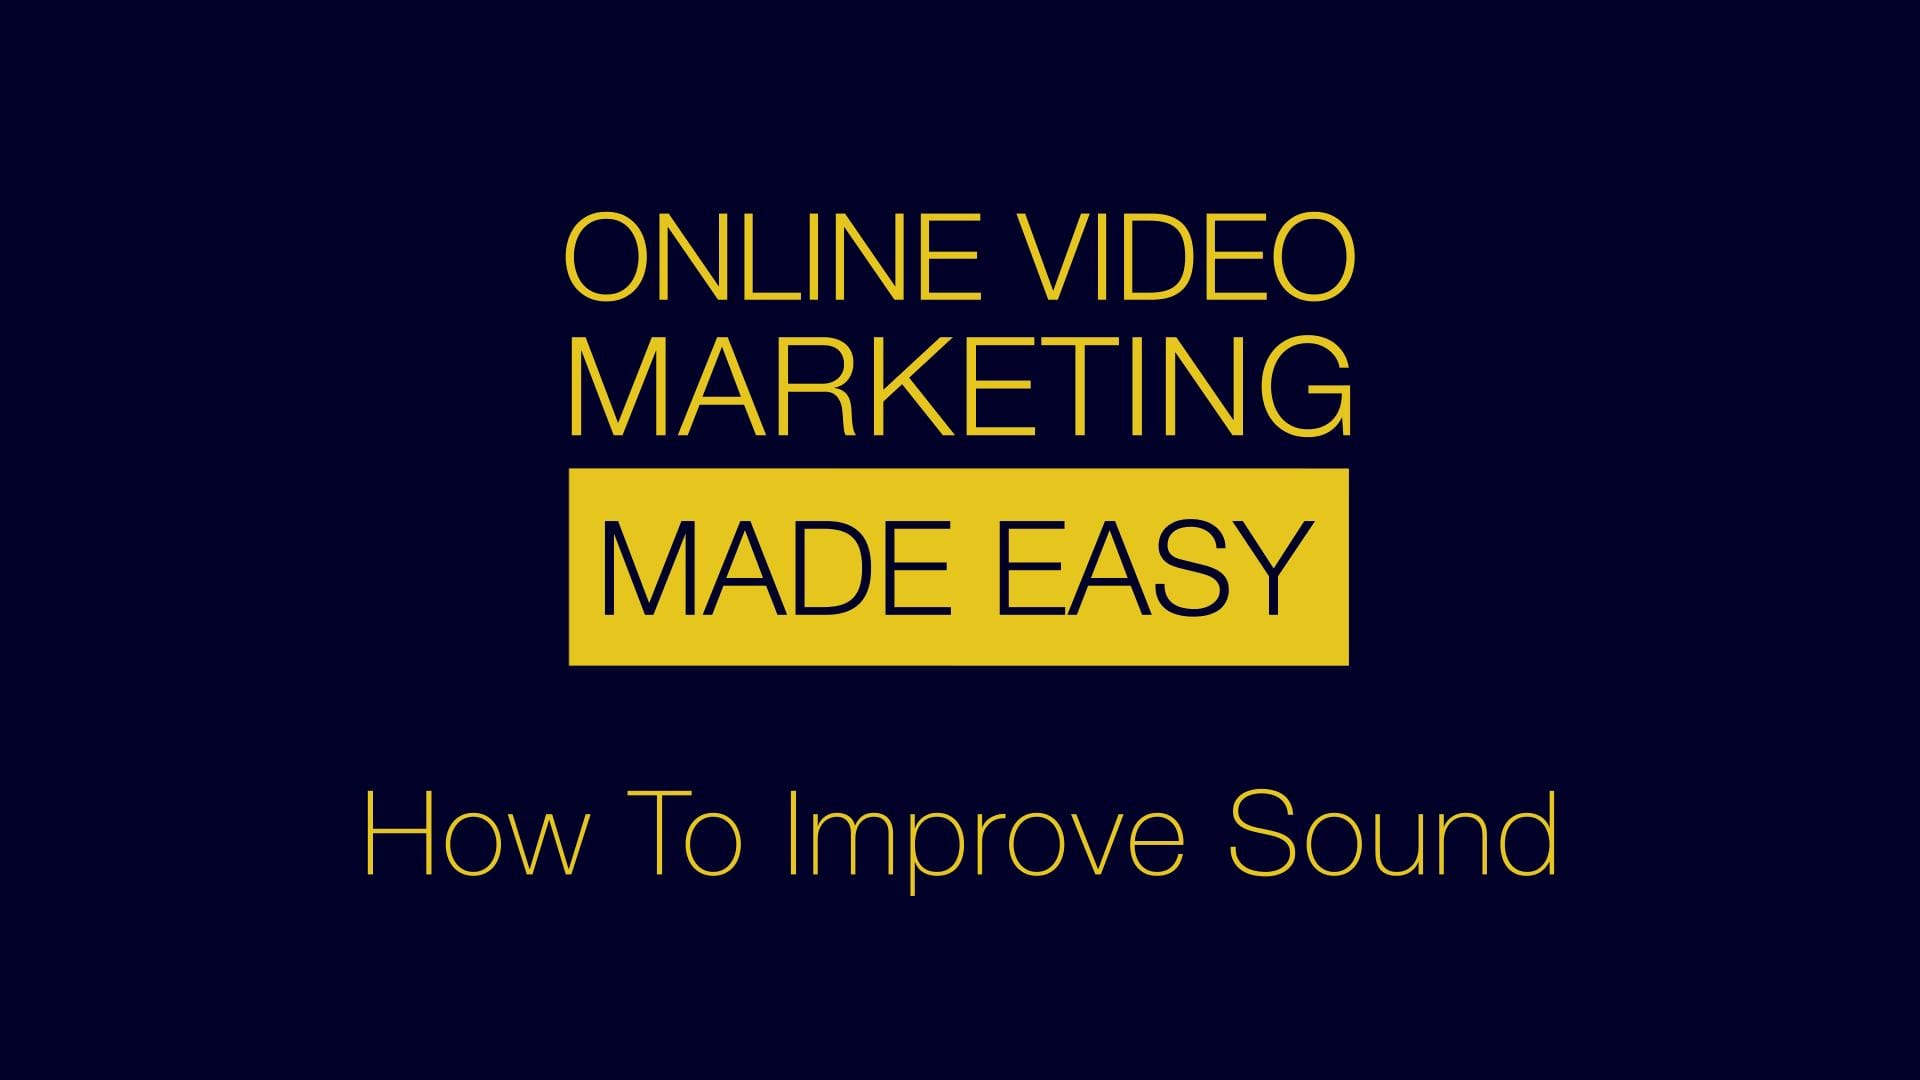 Online Video Marketing Tutorial: Is sound really that important?